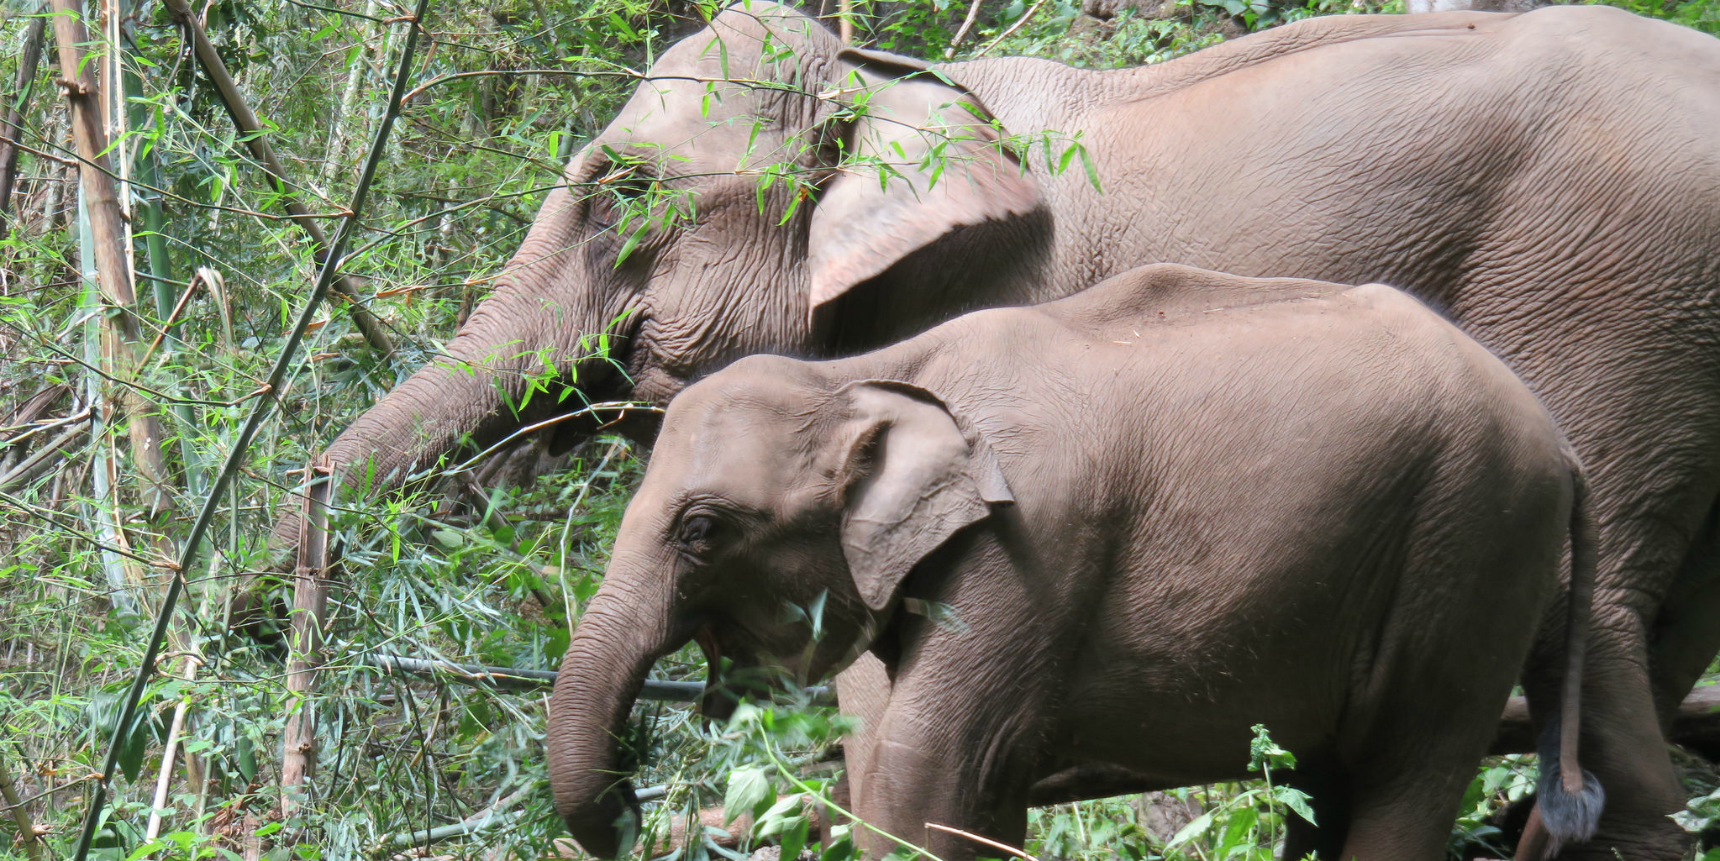 Volunteer with elephants and learn how to track and analyse their behaviour on GVI's wildlife conservation internship.